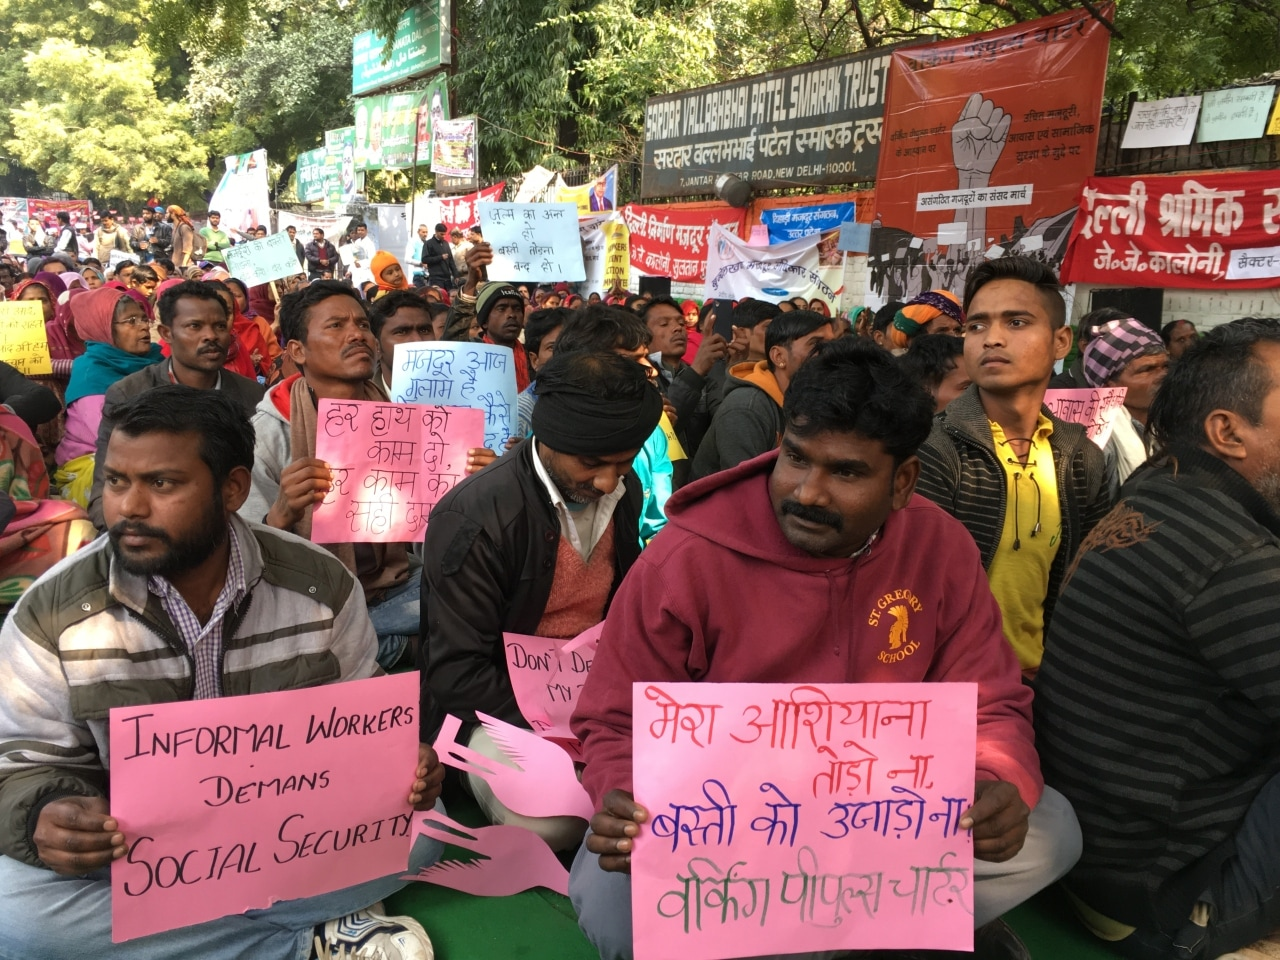 Informal workers protest for social security benefits at a rally in New Delhi, India on February 1, 2019.